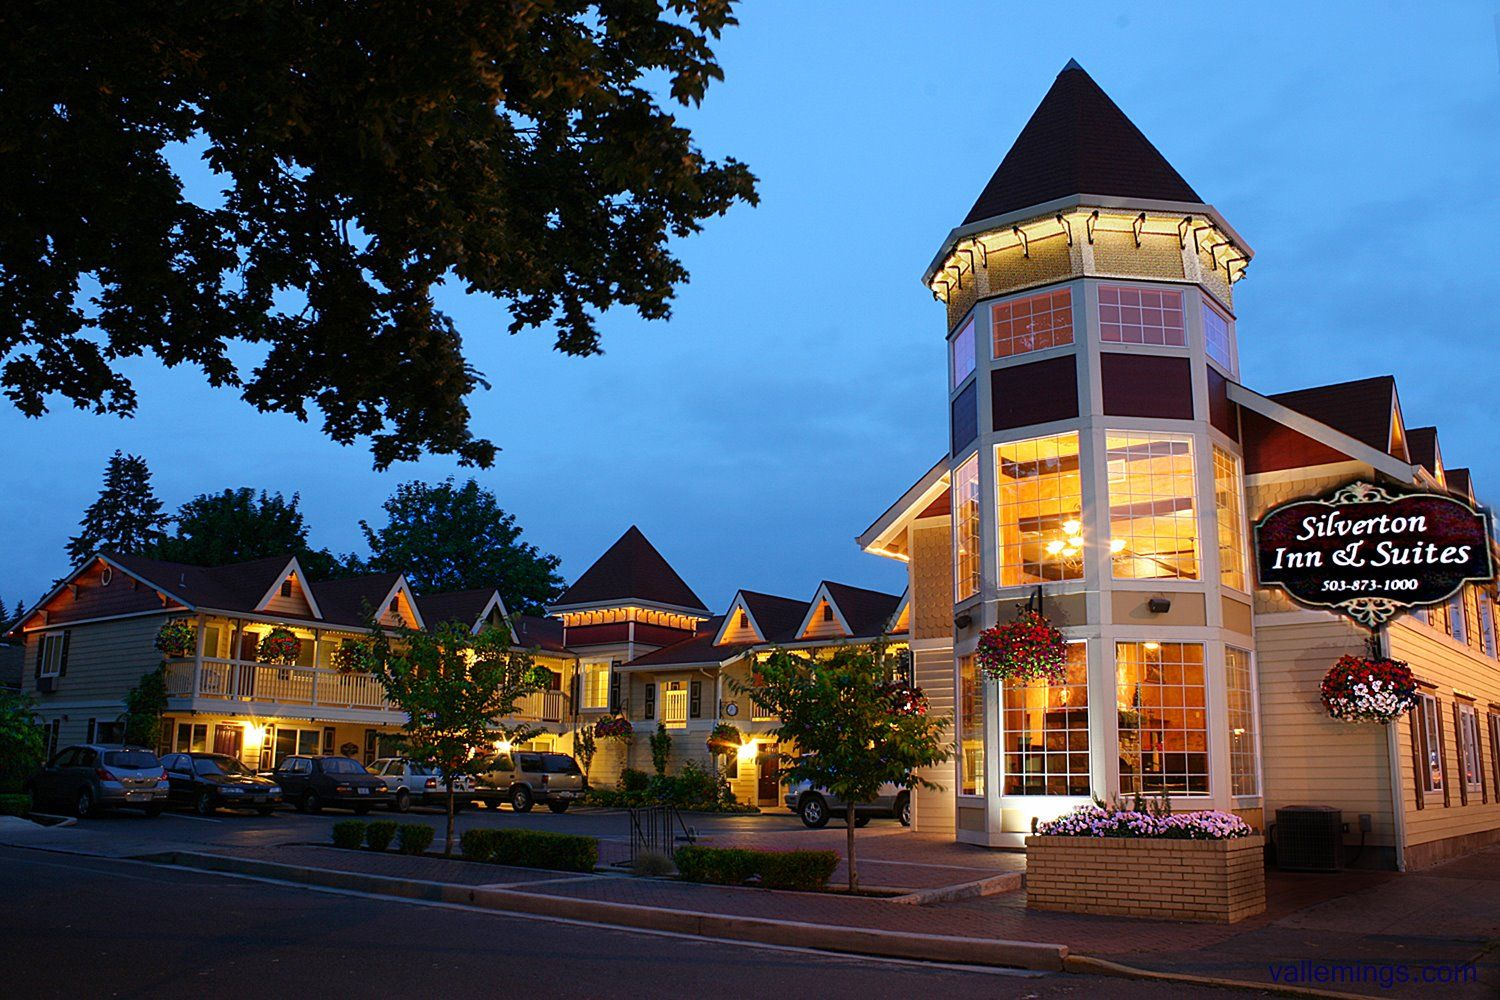 Rooms: Silverton Inn & Suites Is A Boutique Hotel Located In The